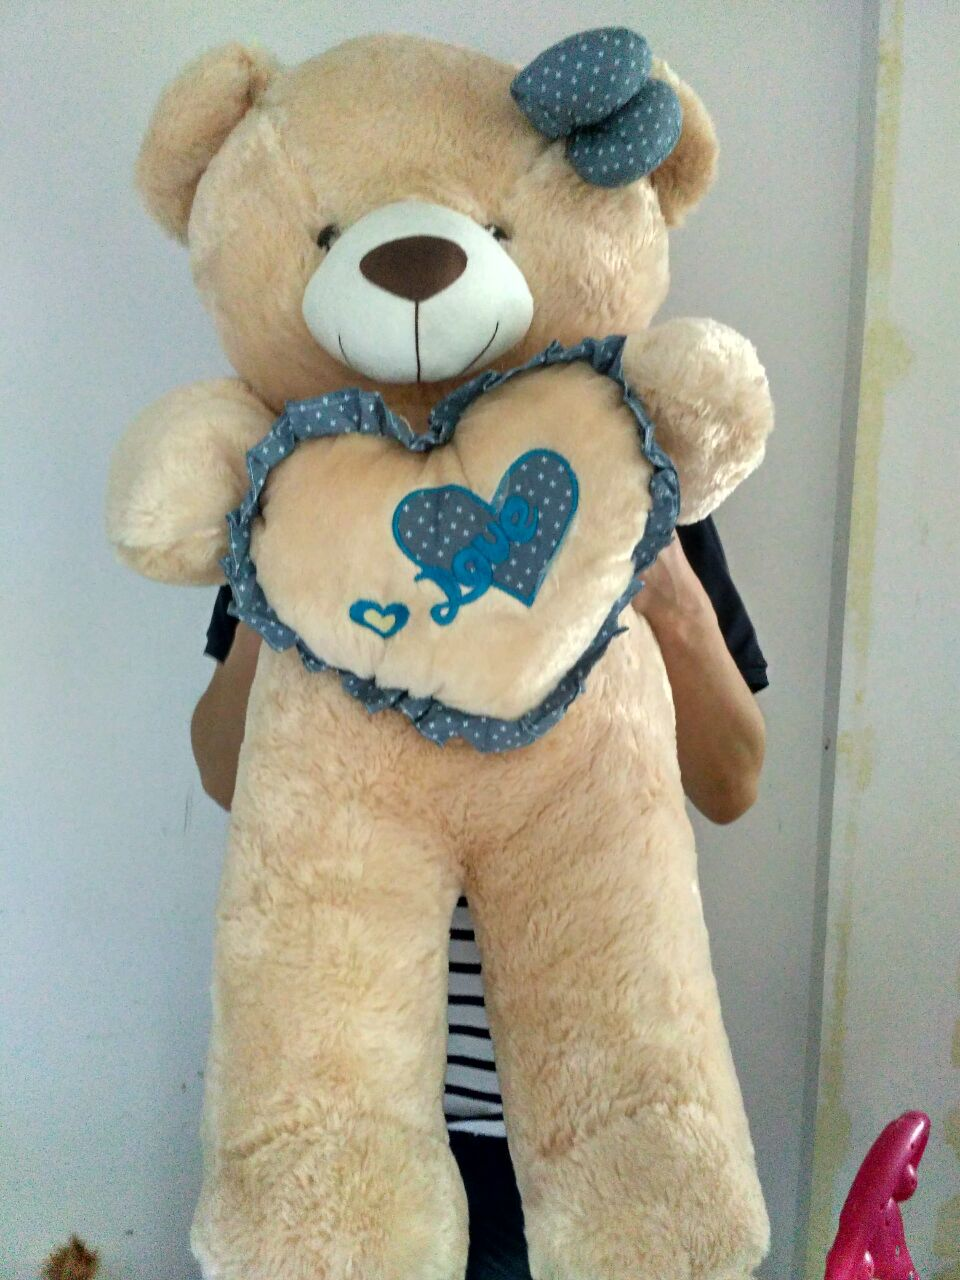 huge lovely plush teddy bear toy with blue heart and bow creative bear doll gift about 120cm huge lovely plush teddy bear toy with blue heart and bow creative bear doll gift about 120cm